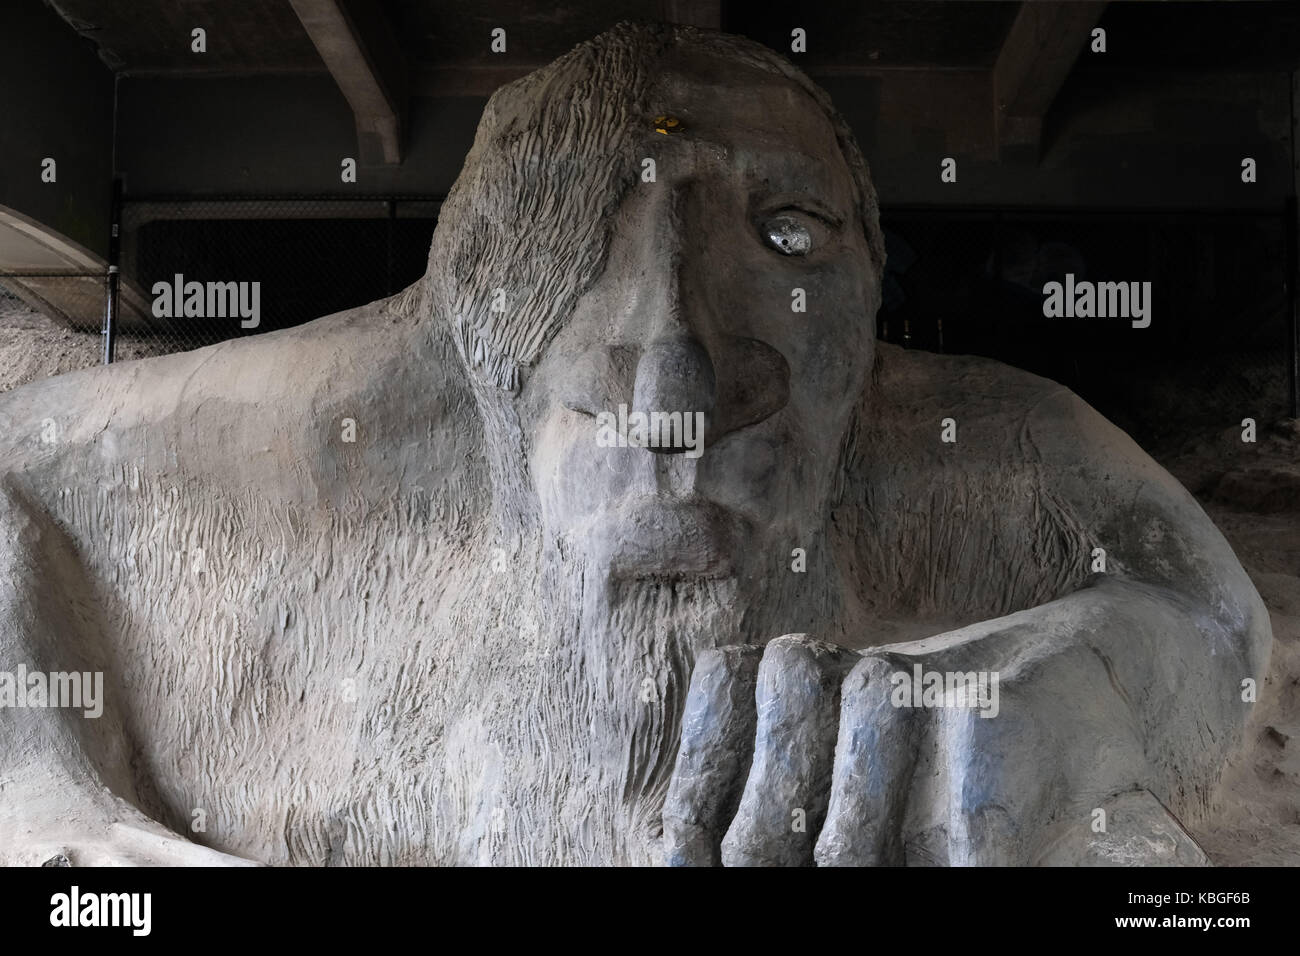 The Fremont Troll which sits under the Fremont Bridge in the Fremont area of Seattle, Washington, USA. - Stock Image